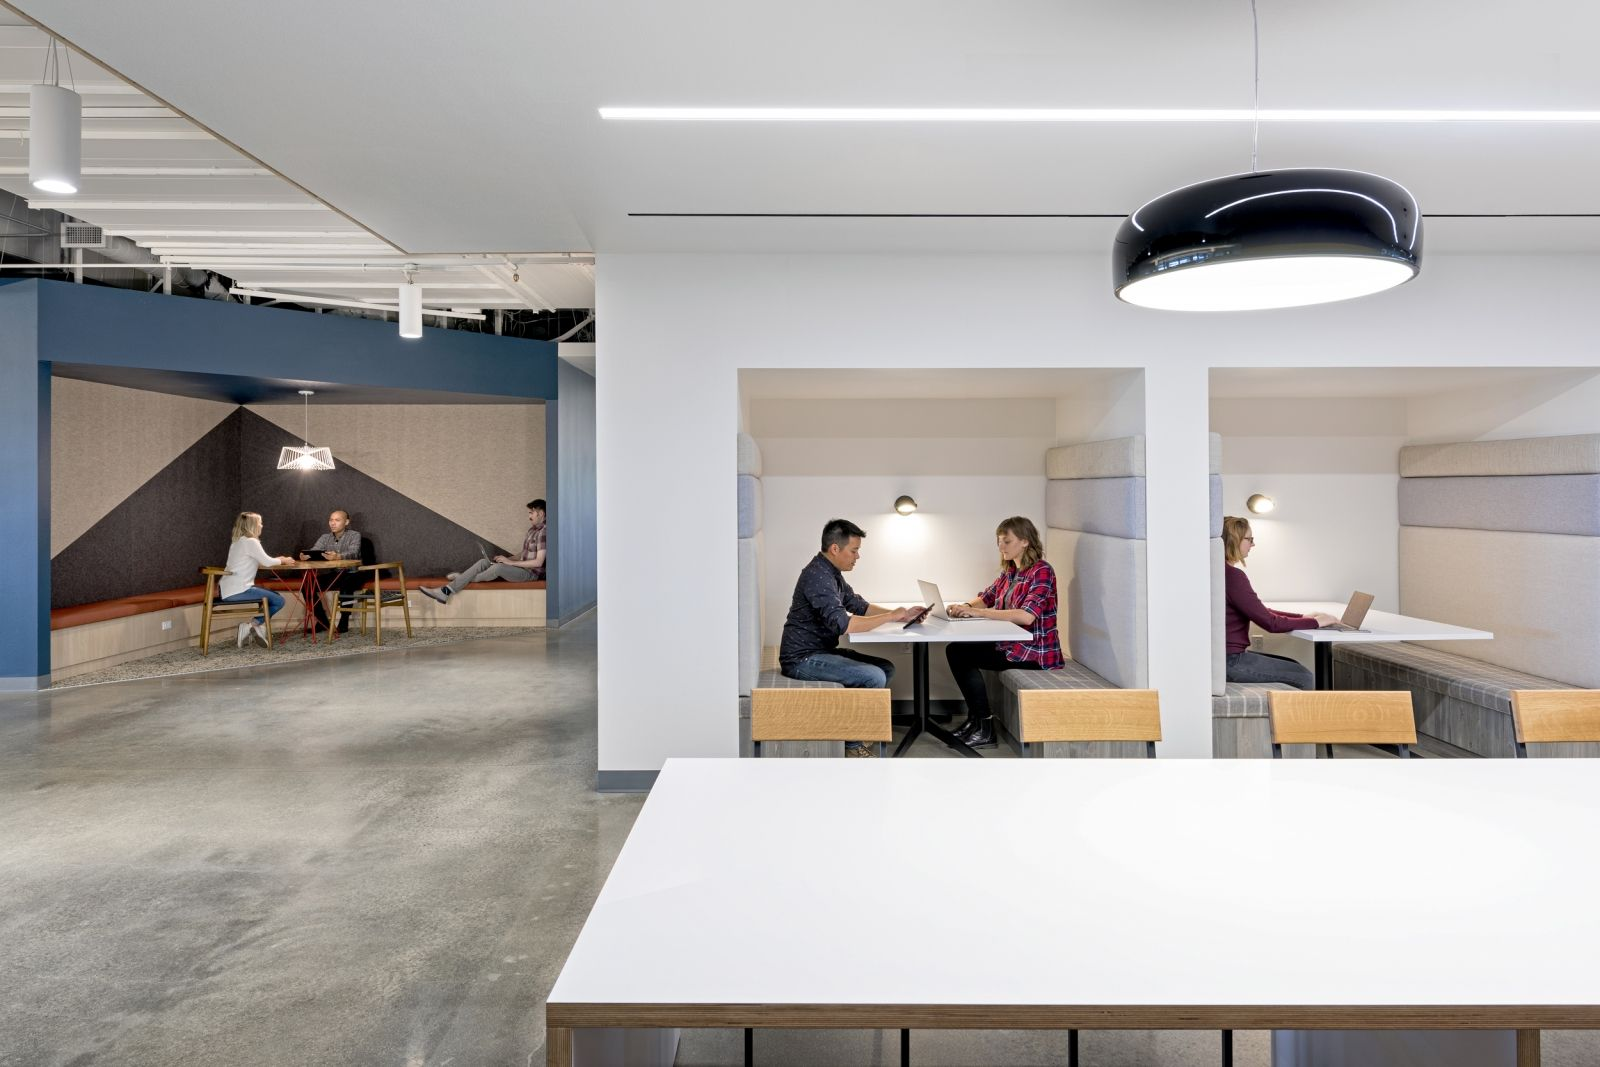 kimball office orders uber yelp. Kimball Office Orders Uber And Yelp For Chicago Showroom | Showroom, Designs Spaces